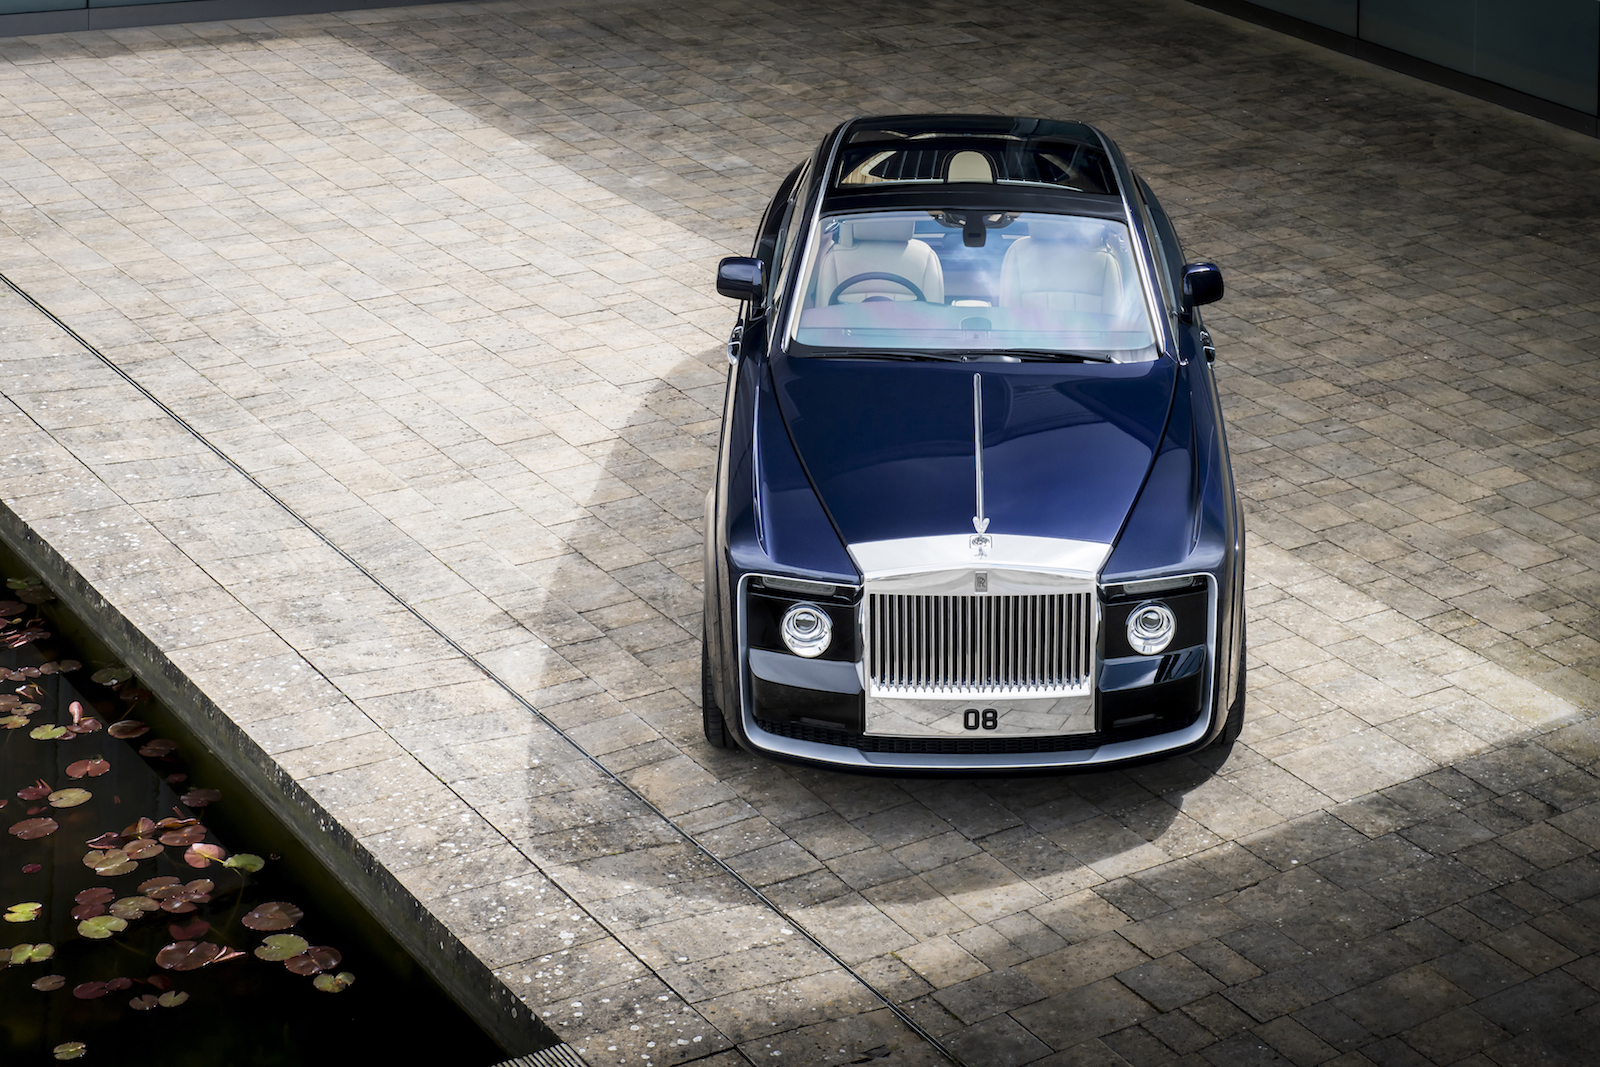 Rolls-Royce Torpedo Photo: James Lipman / jameslipman.com